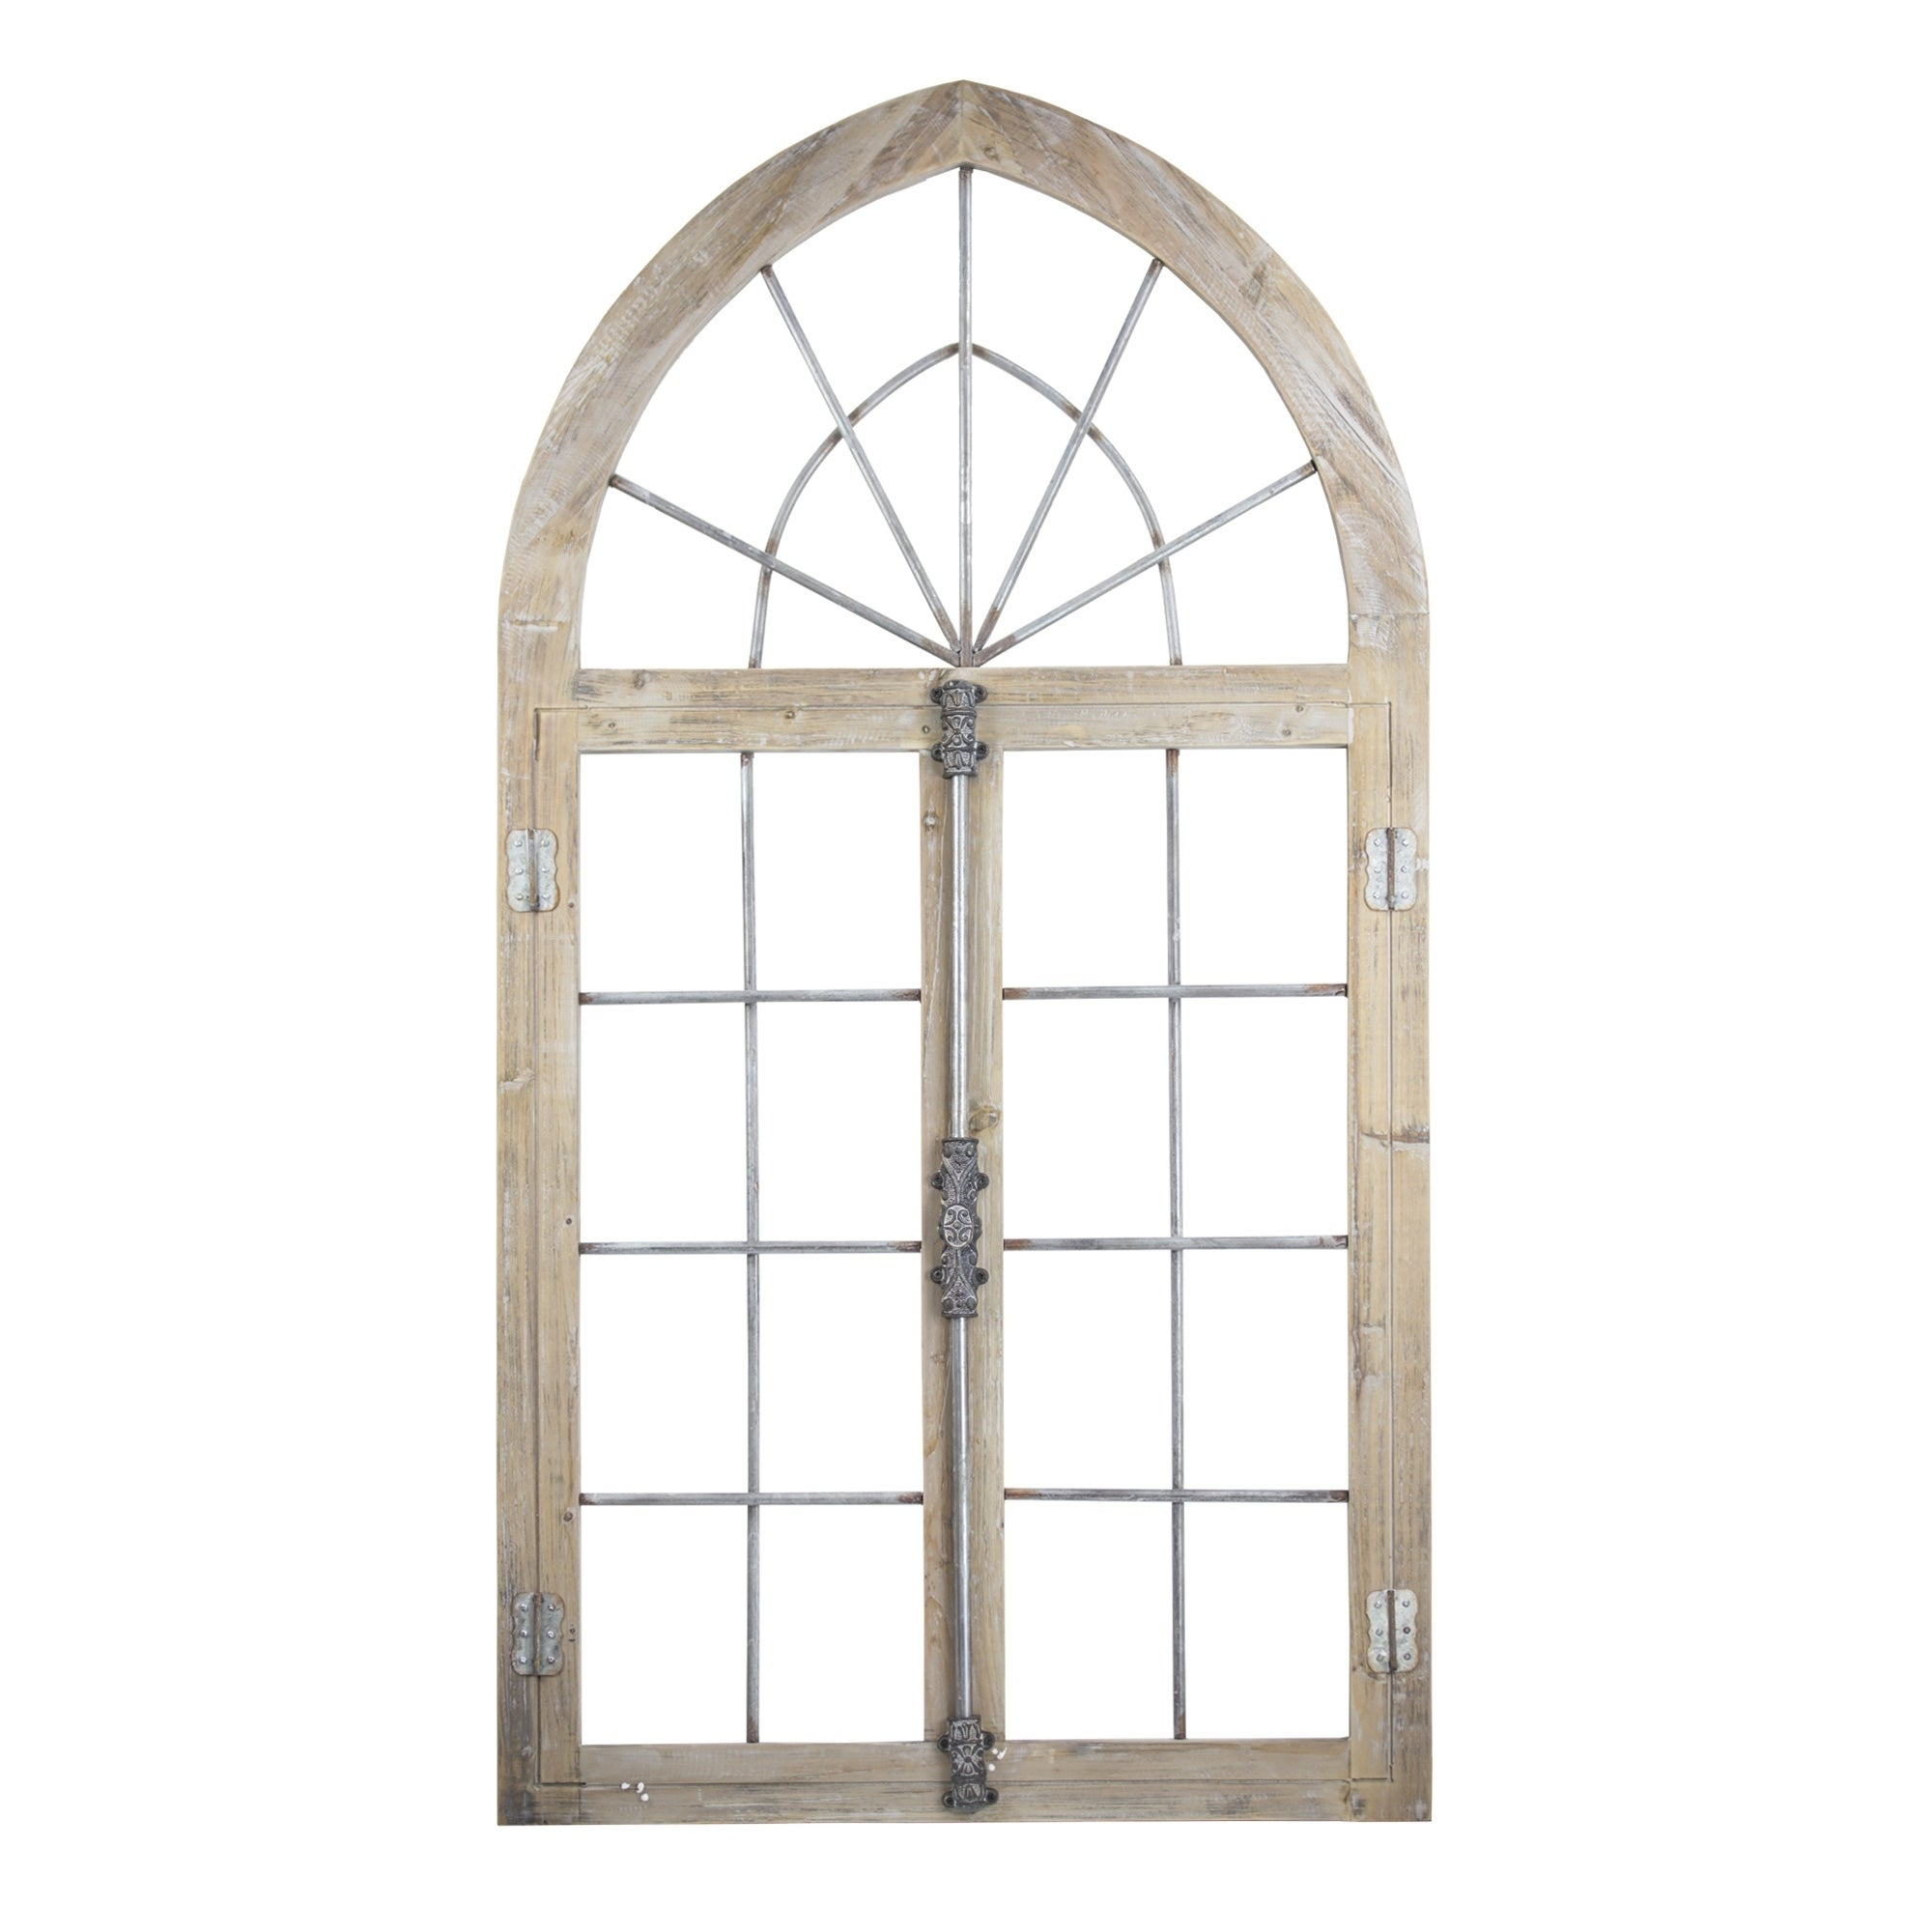 Wood And Metal Arched Window Door Wall